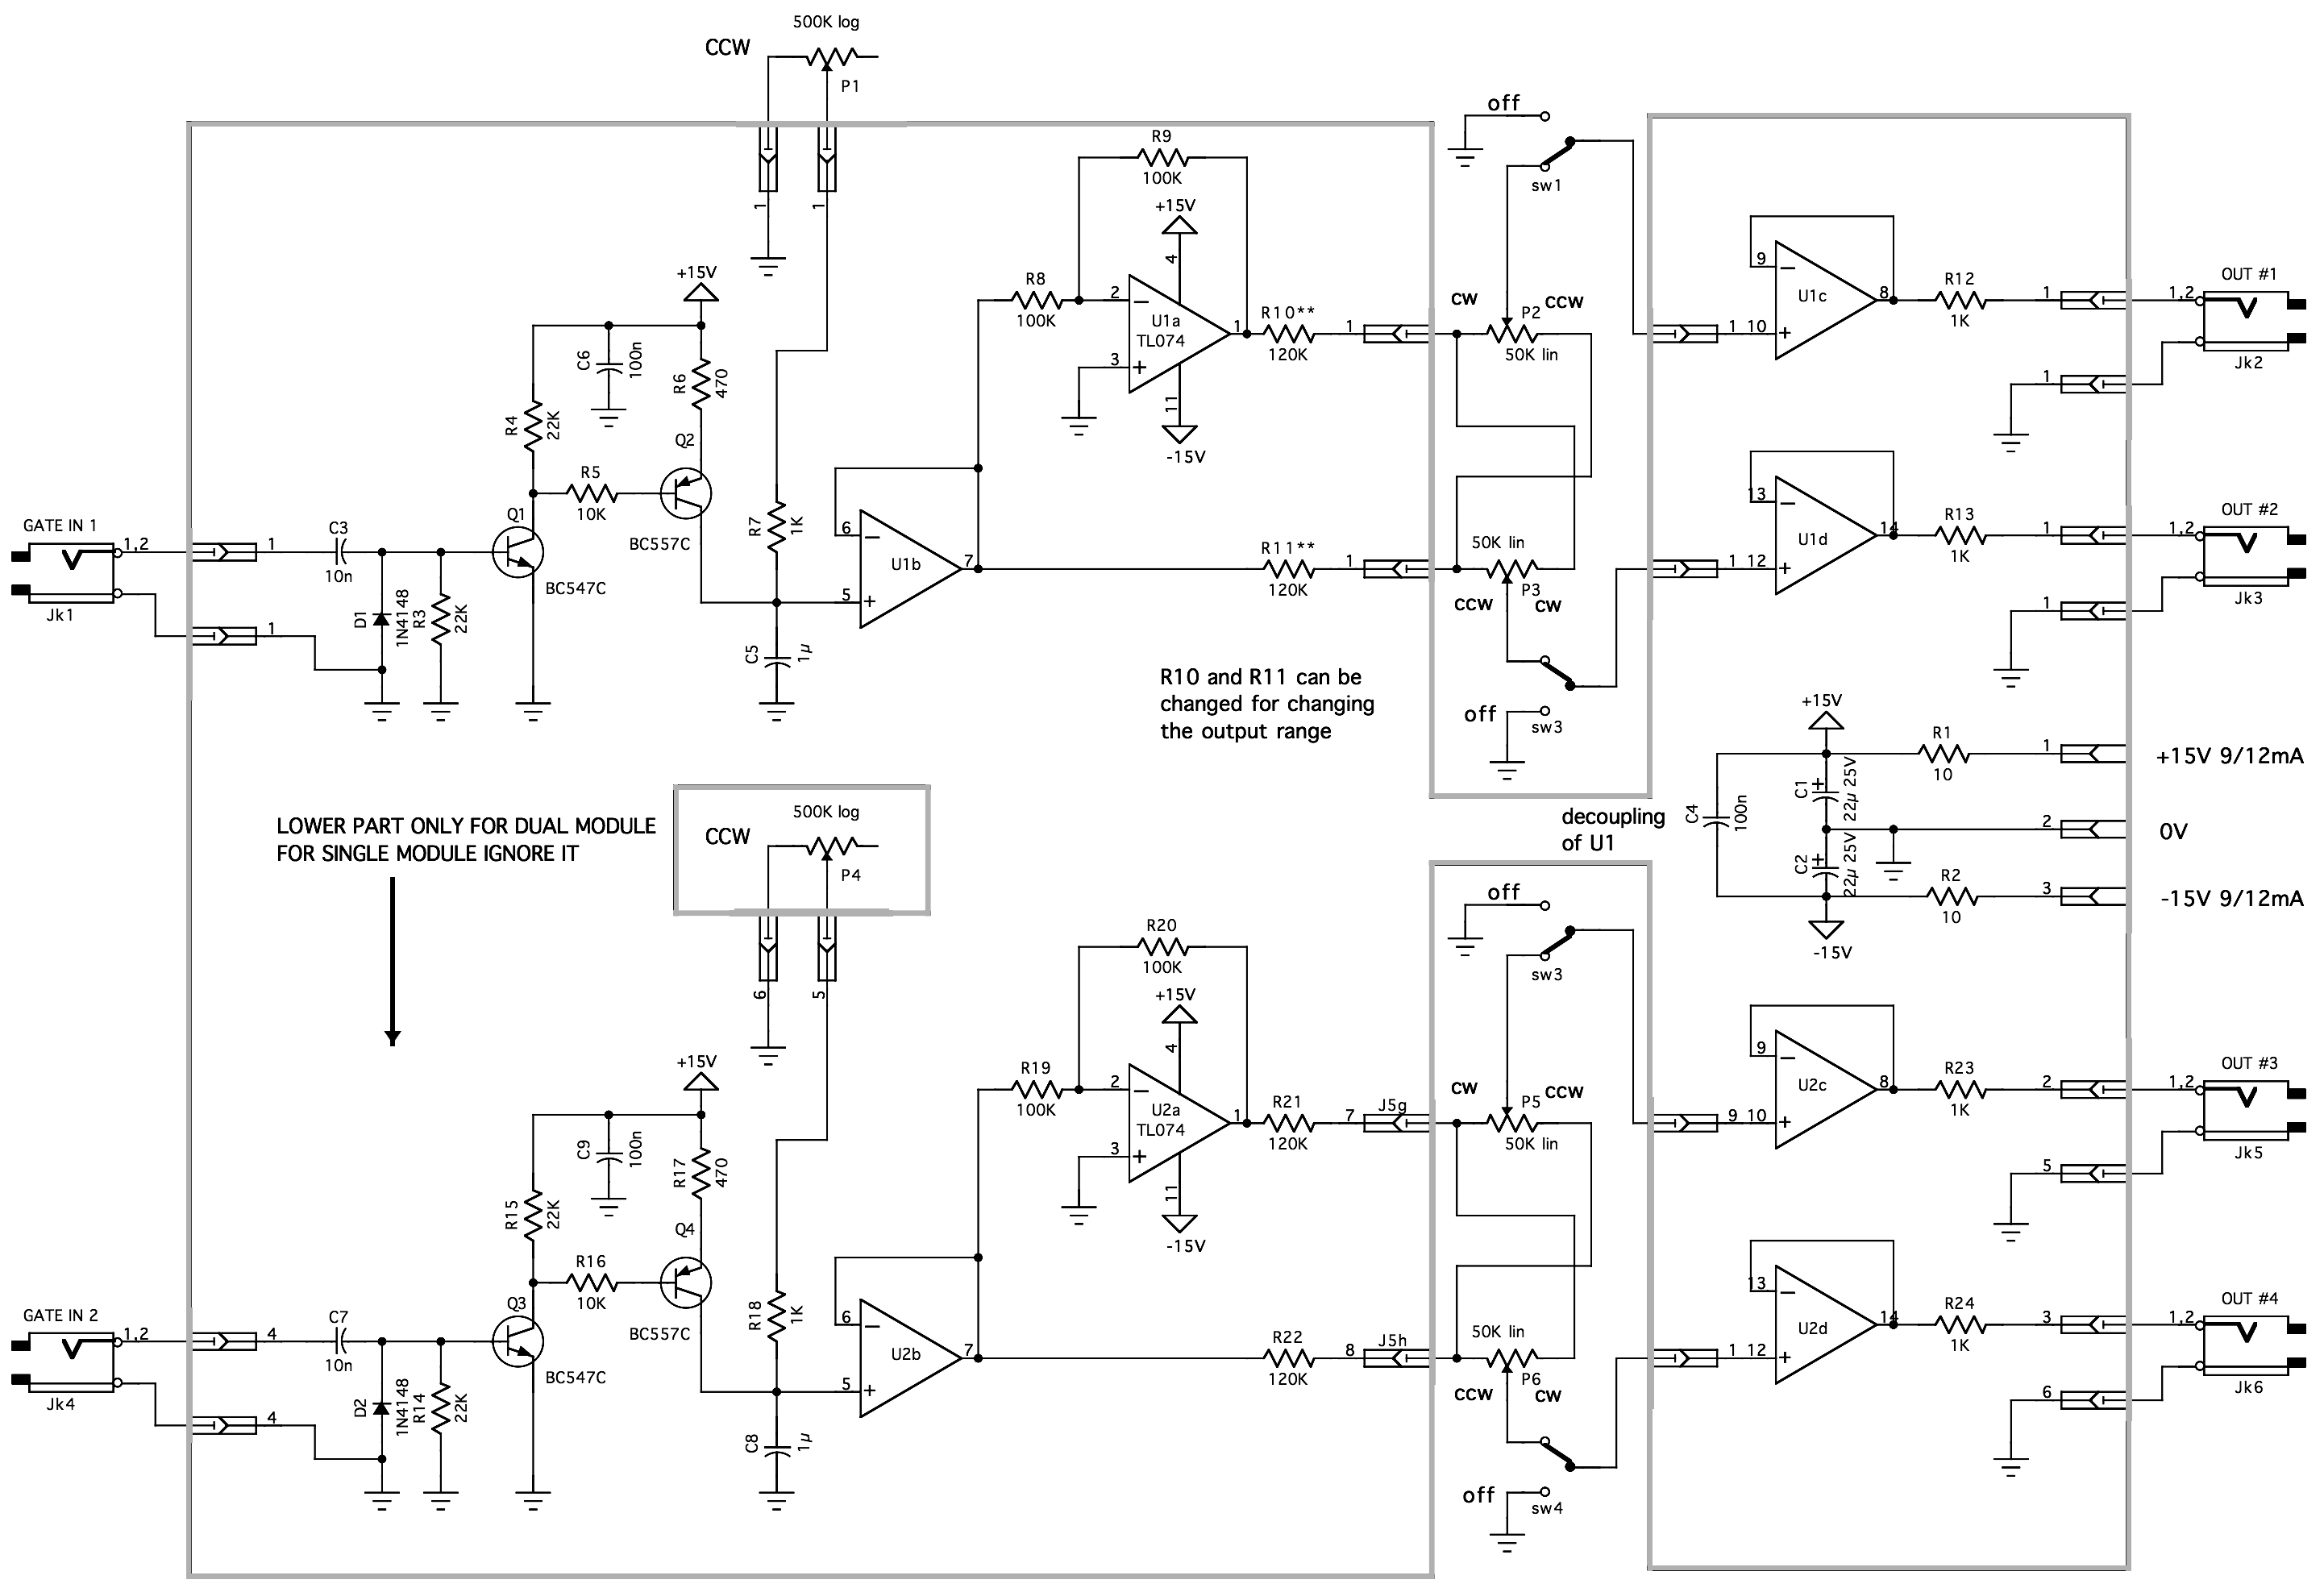 Clock Divider 4017 Circuit Diagram How It Works Channel 1 The Input Signal Is Applied To A Schmitt Trigger Q1 Q2 Which Converts Signals Proper Logical Level 0v Or 15v